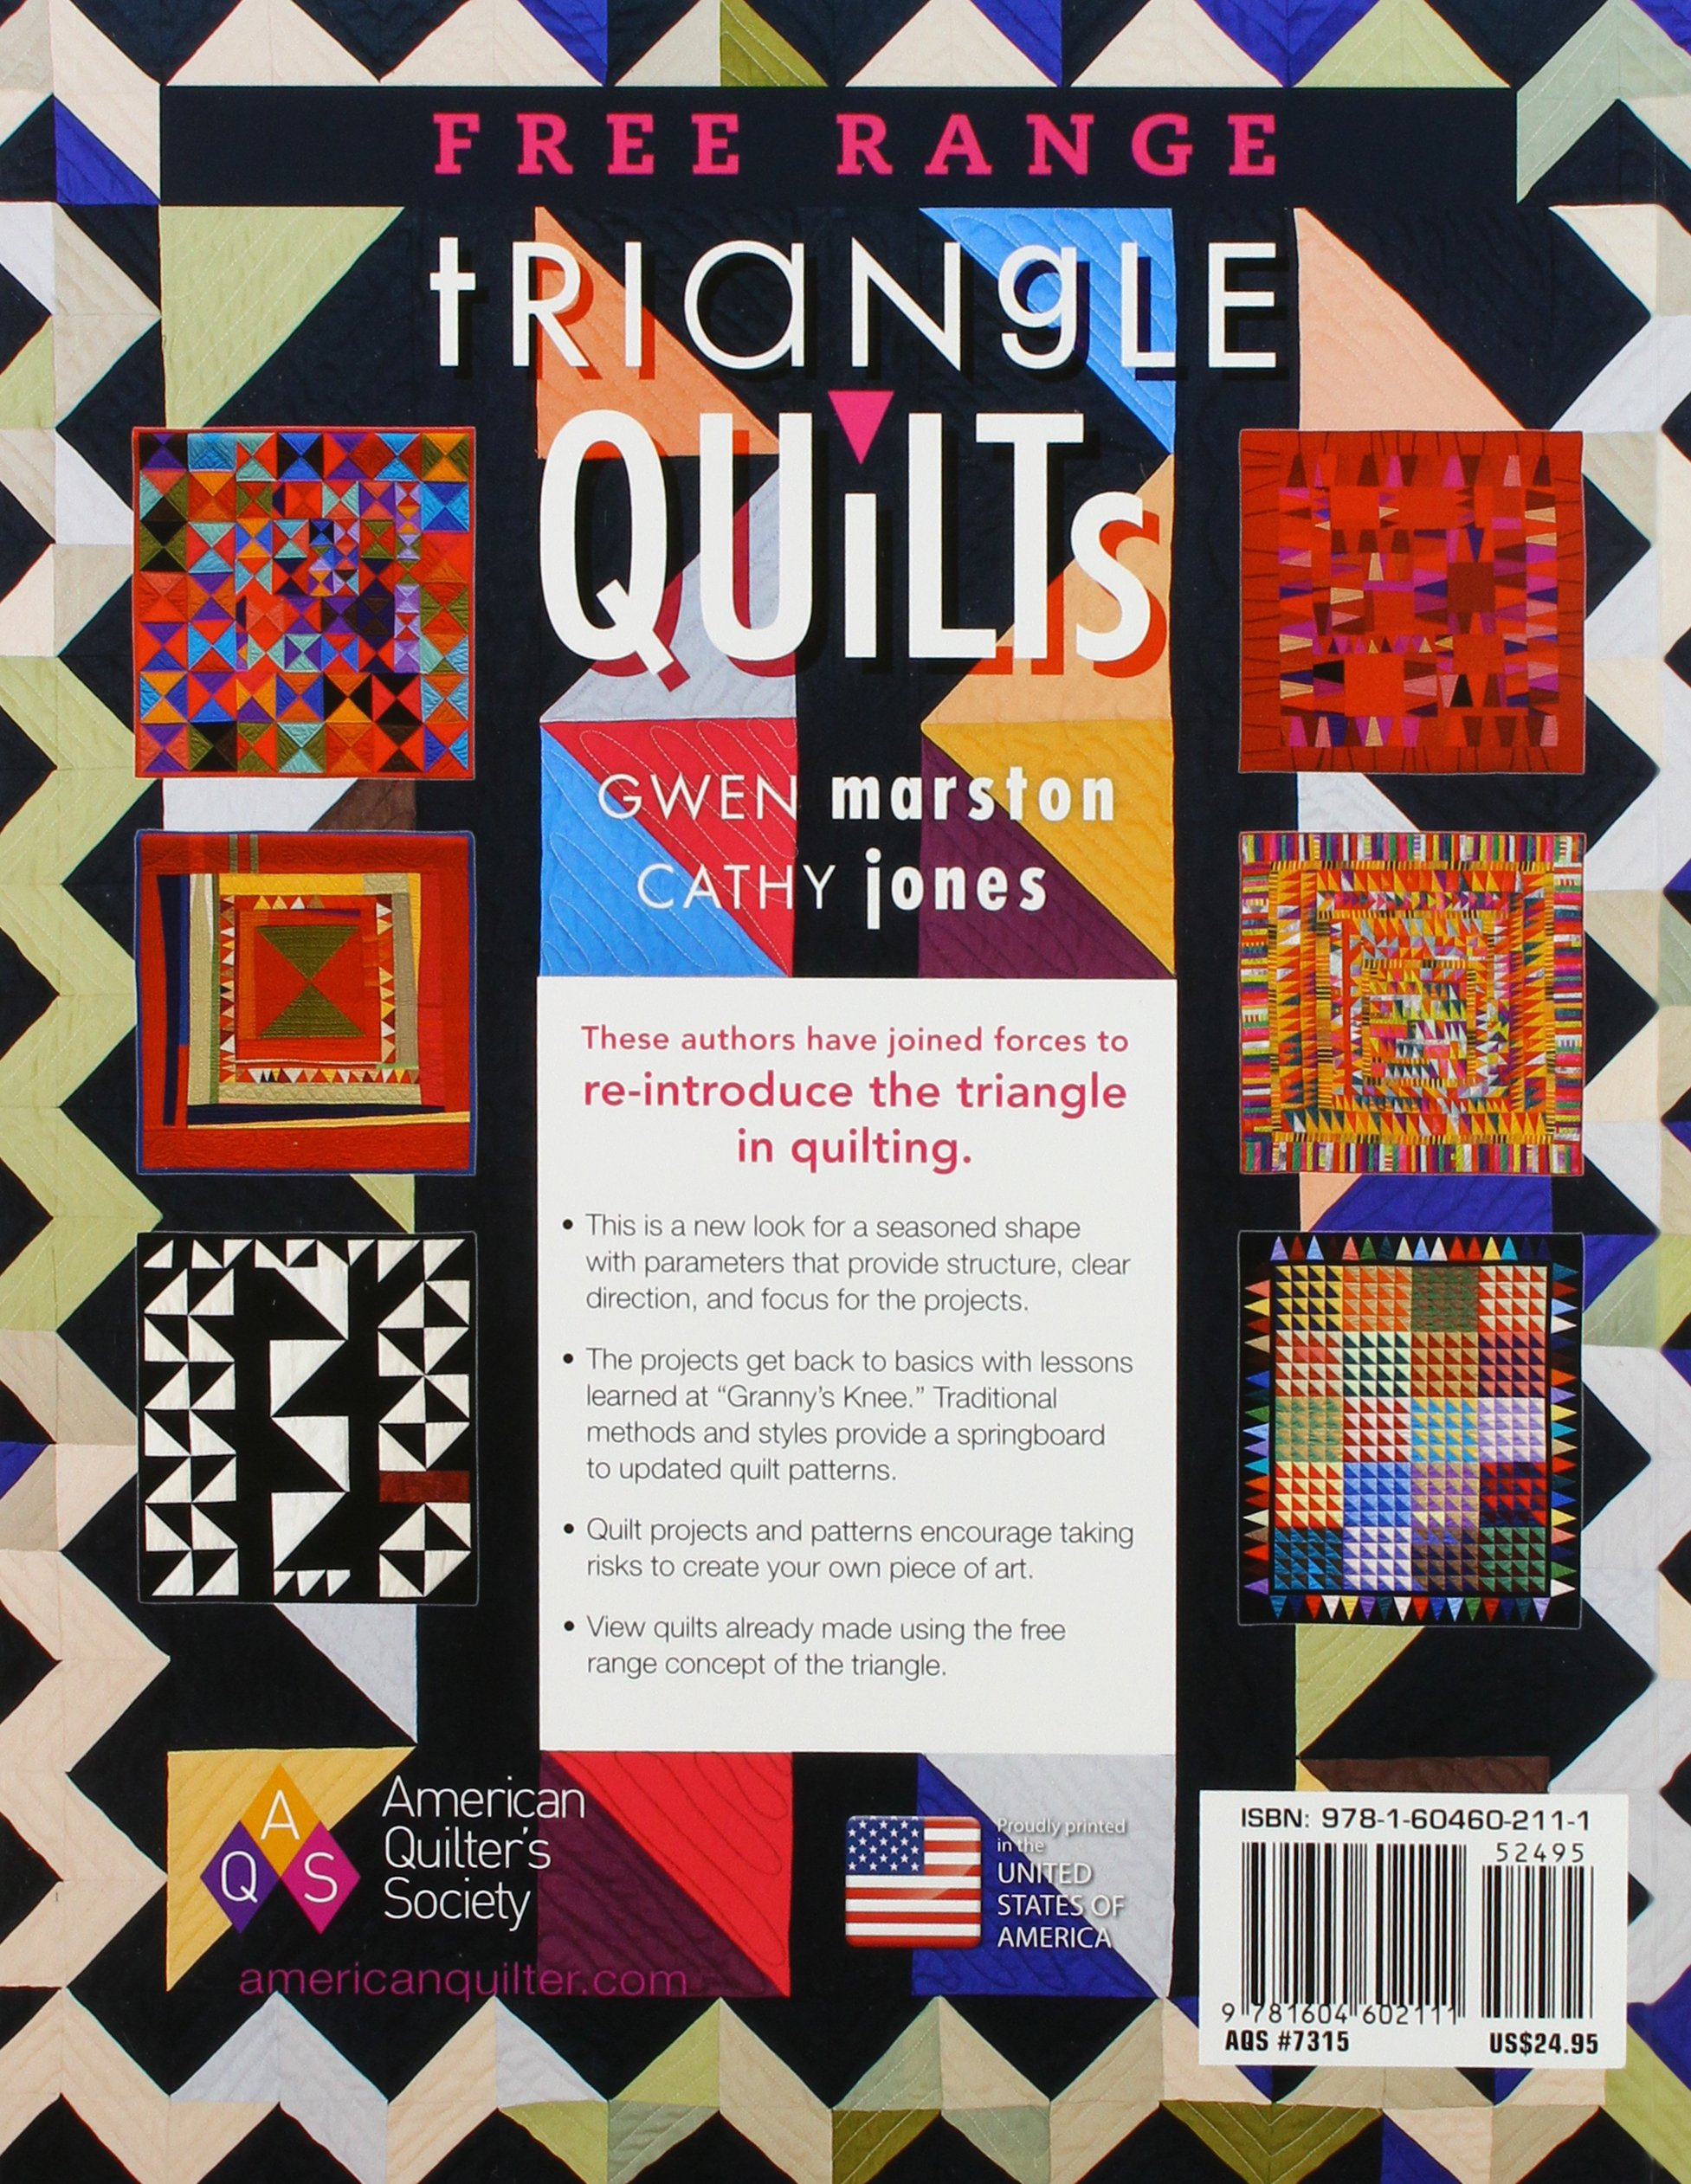 Free Range Triangle Quilts: Gwen Marston, Cathy Jones: 9781604602111:  Amazon: Books